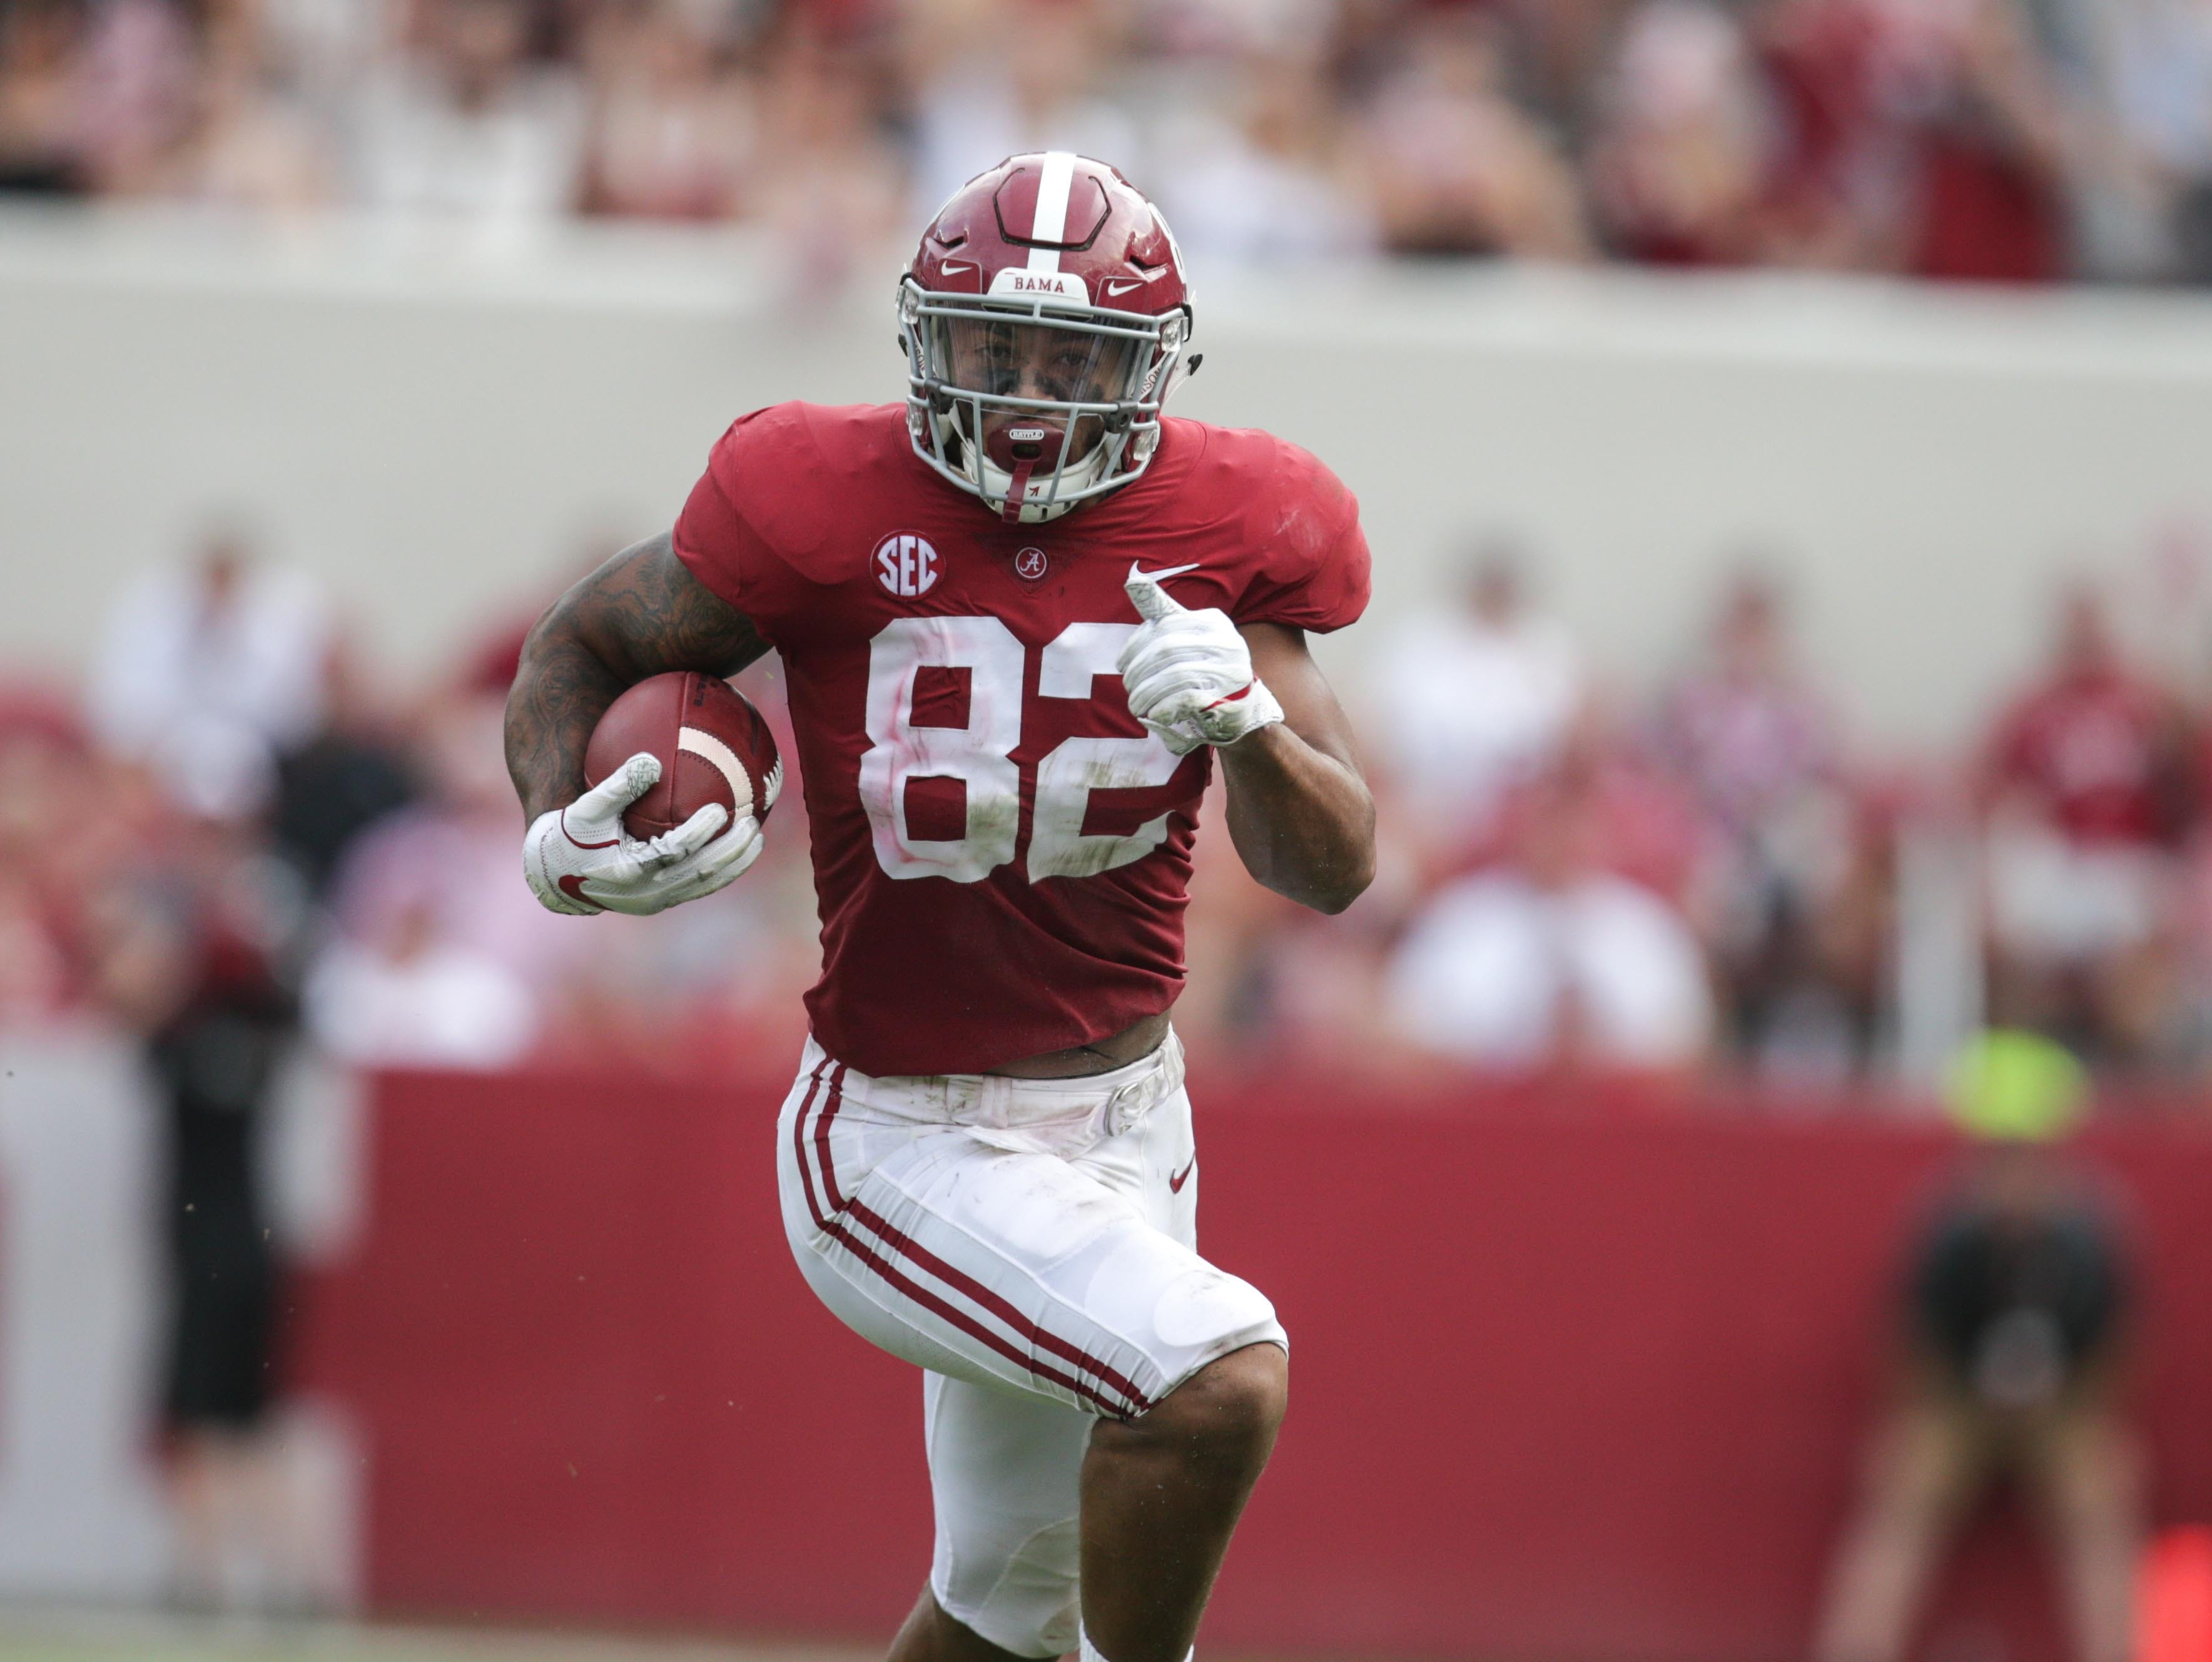 Sep 22, 2018; Tuscaloosa, AL, USA; Alabama Crimson Tide tight end Irv Smith Jr. (82) carries the ball against Texas A&M Aggies at Bryant-Denny Stadium. The Tide defeated the Aggies 45-23. Mandatory Credit: Marvin Gentry-USA TODAY Sports